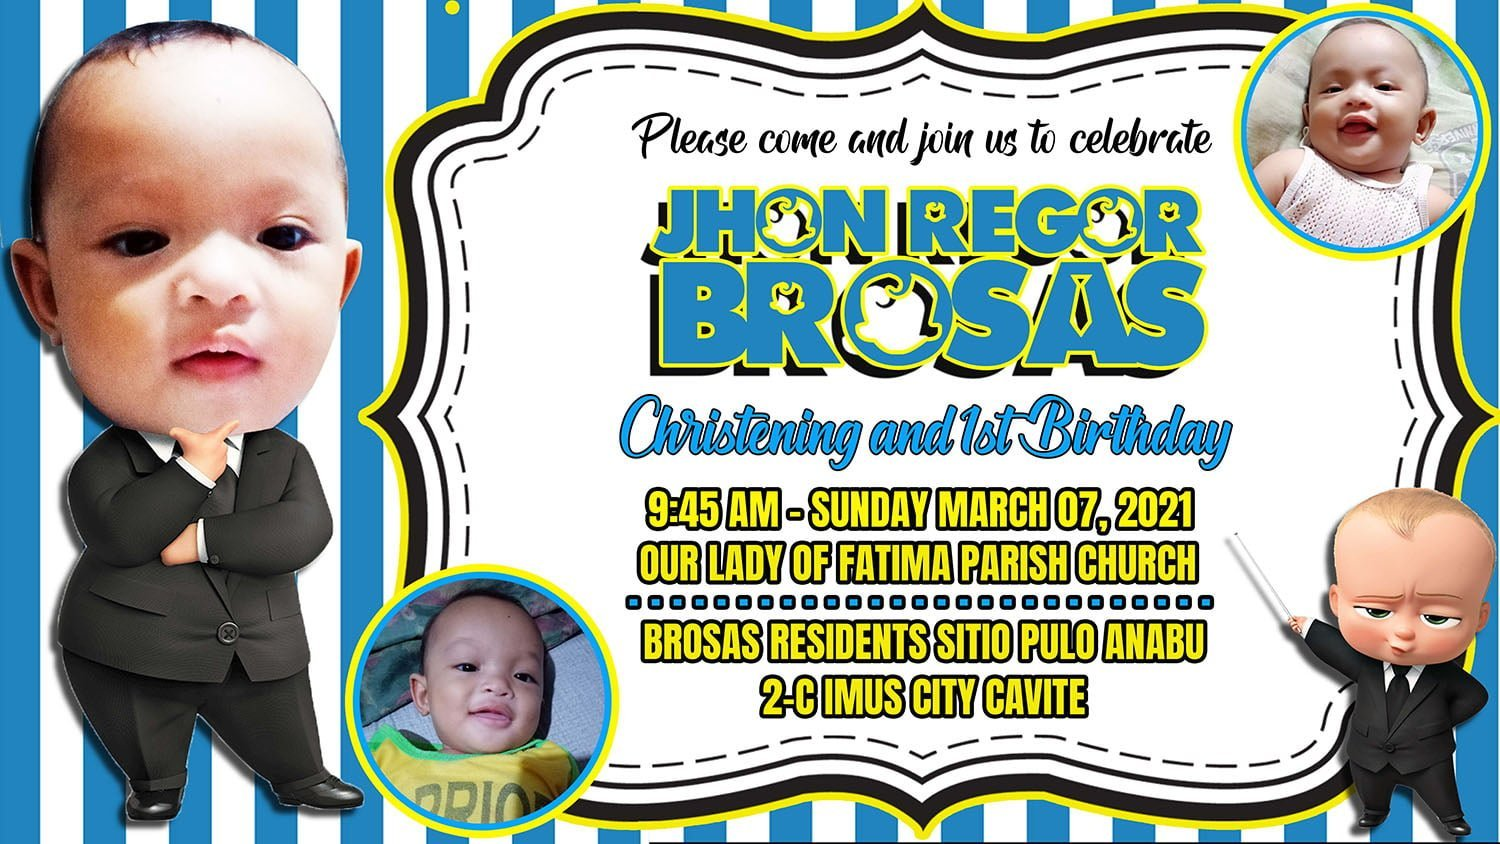 Boss Baby Invitation Template, Boss Baby Invitation Template for Birthday and Christening: FREE PSD Download, JTarp Design